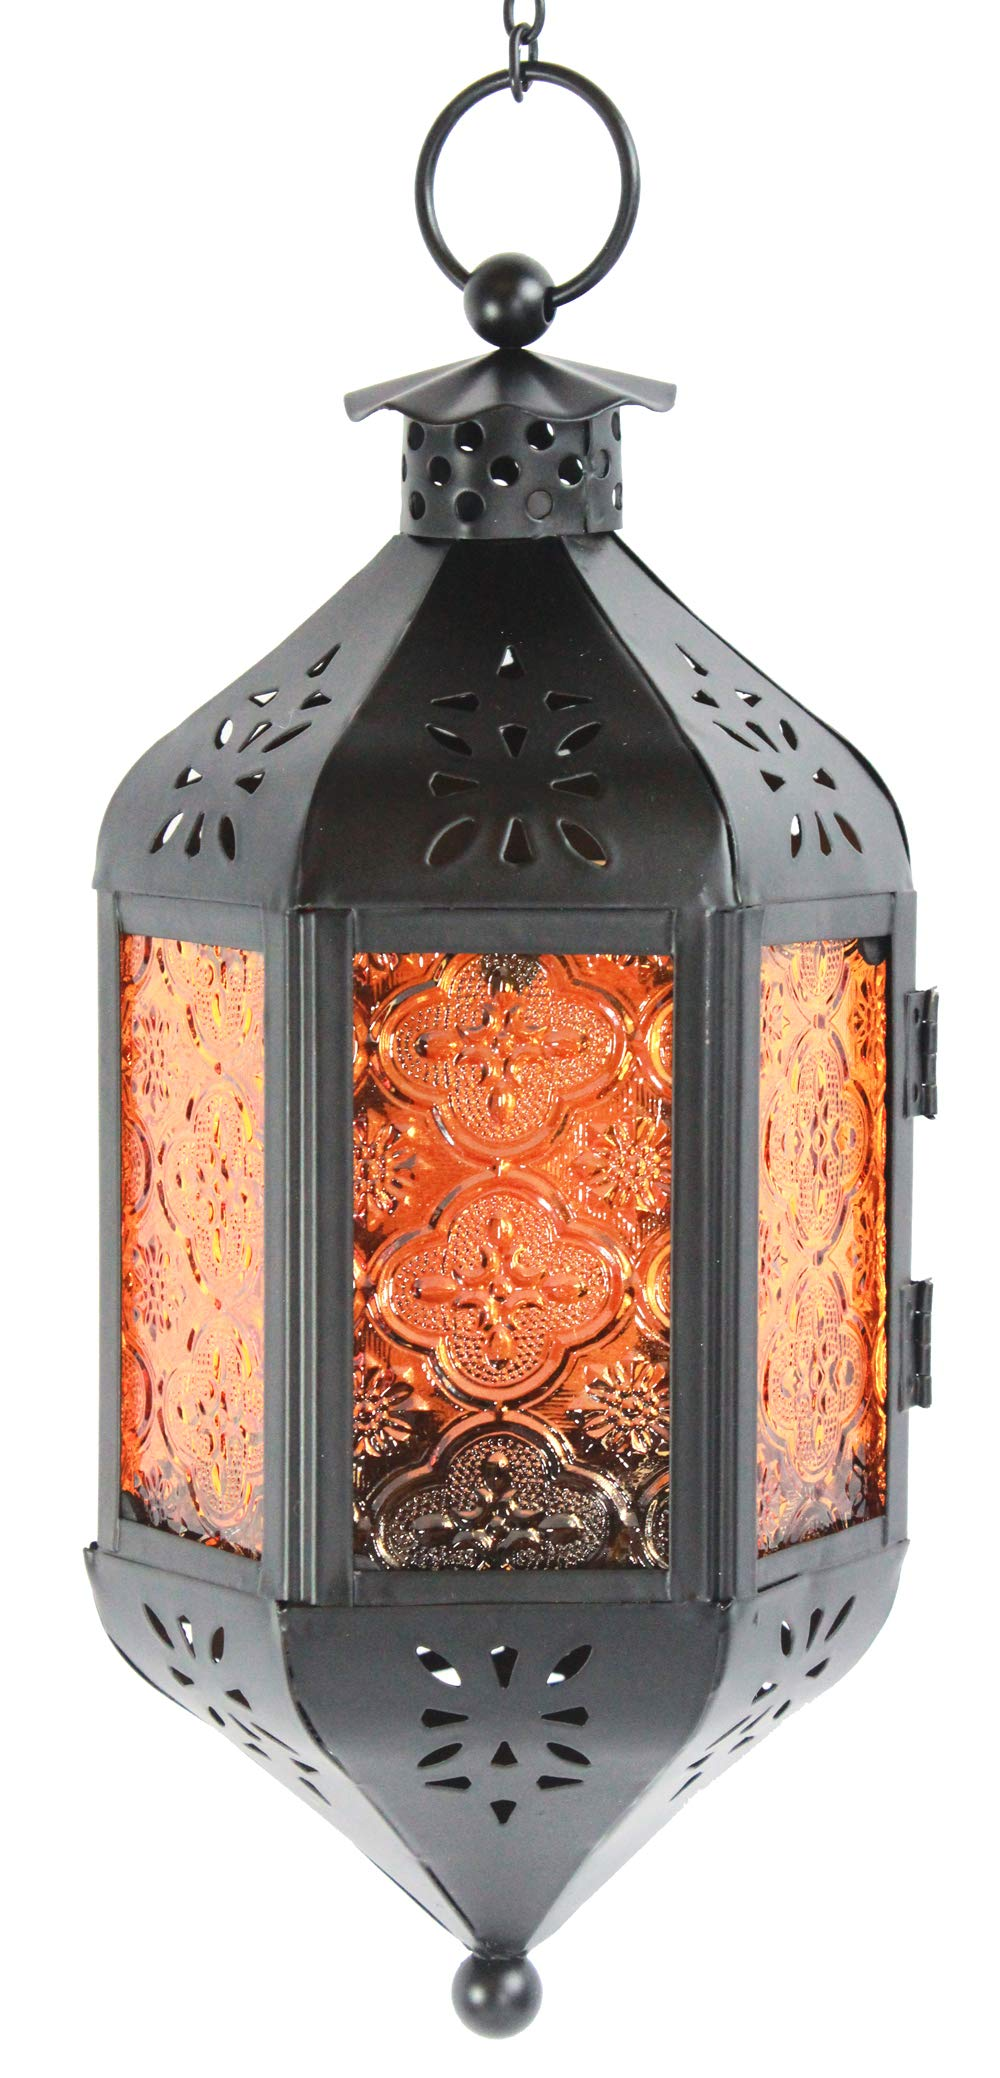 Vela Lanterns Hanging Moroccan Style Candle Lantern with Chain, Amber